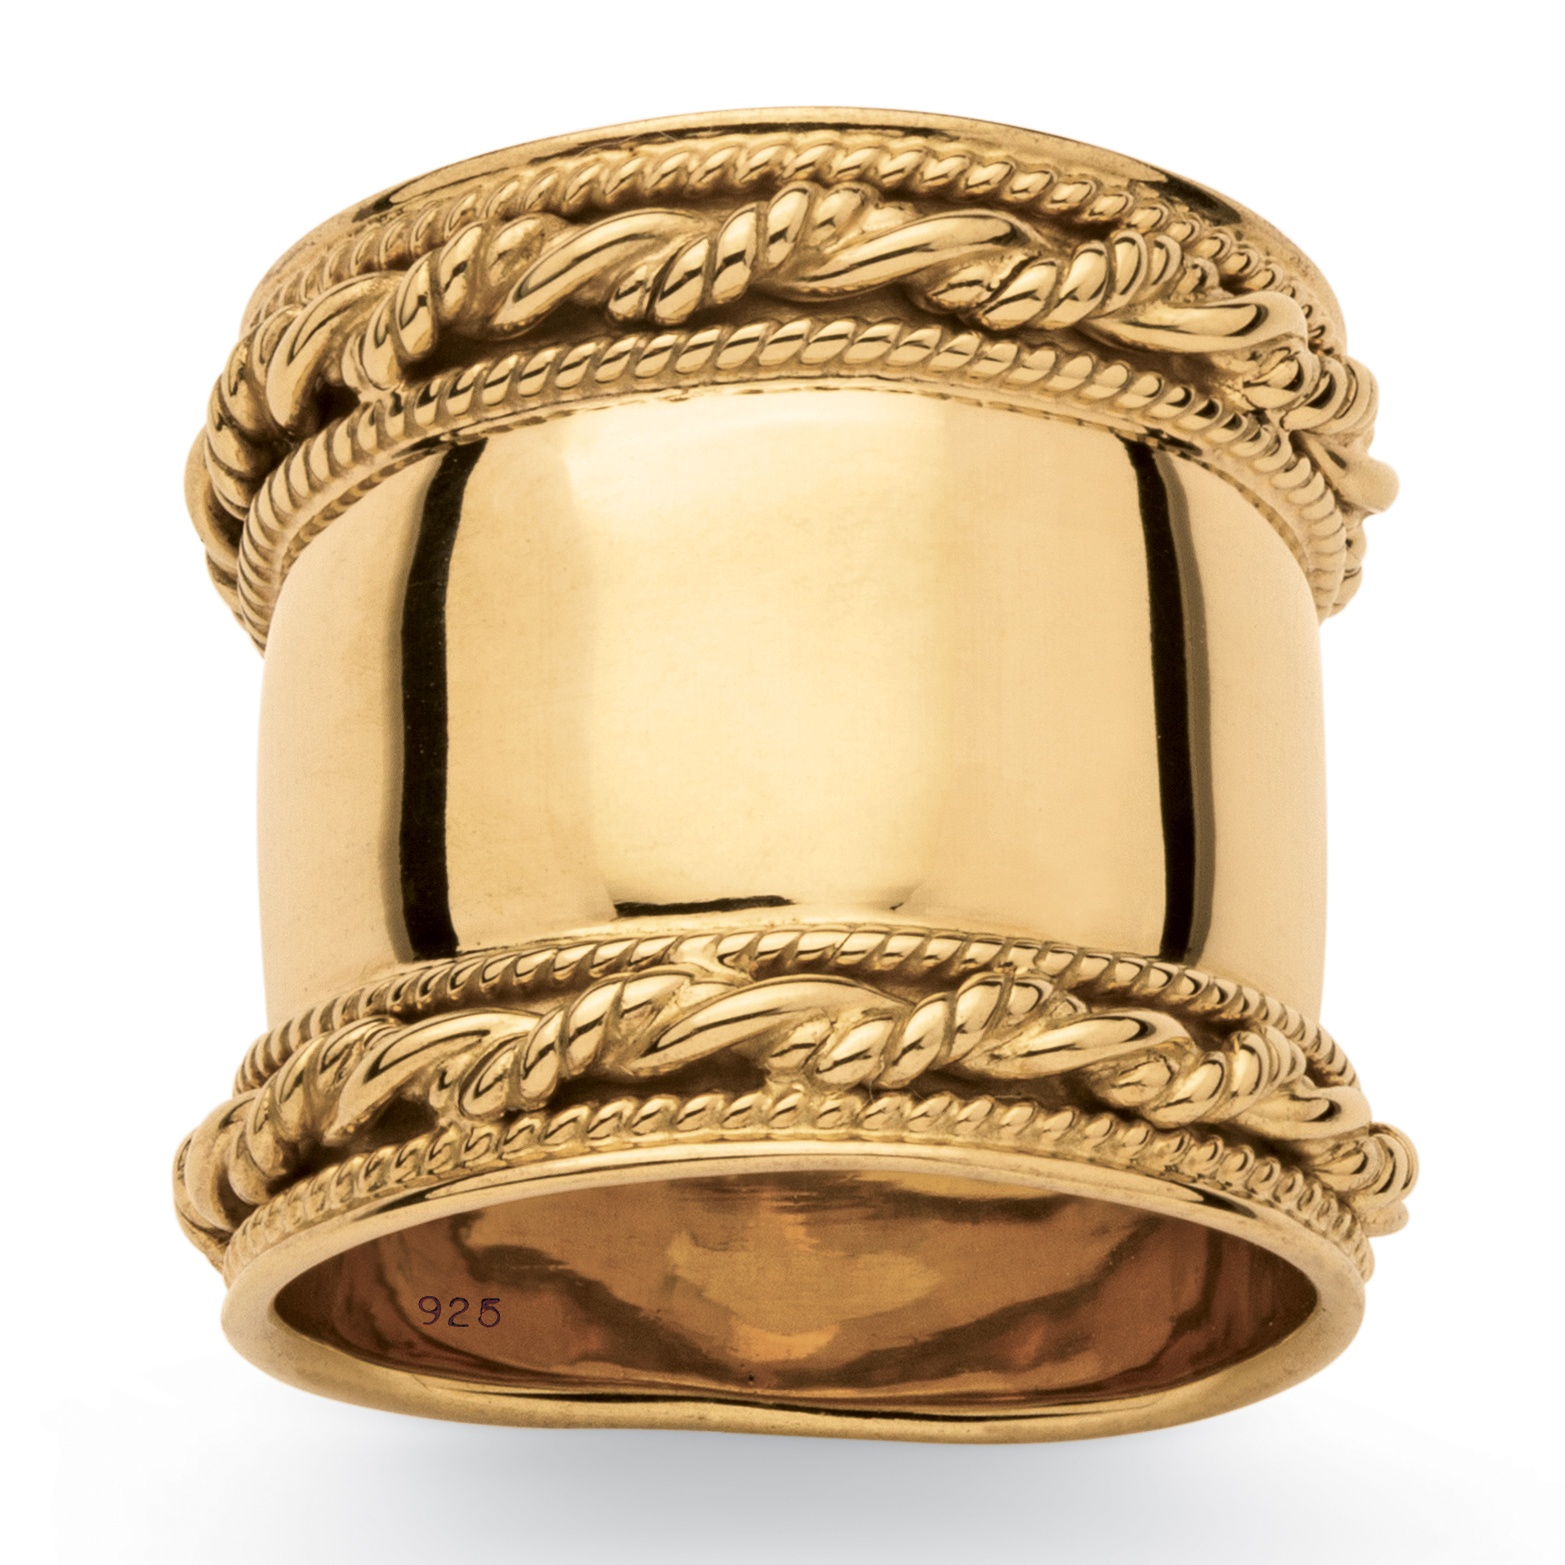 BandStyle Ring with Rope Detailing in 18k Yellow Gold over Sterling